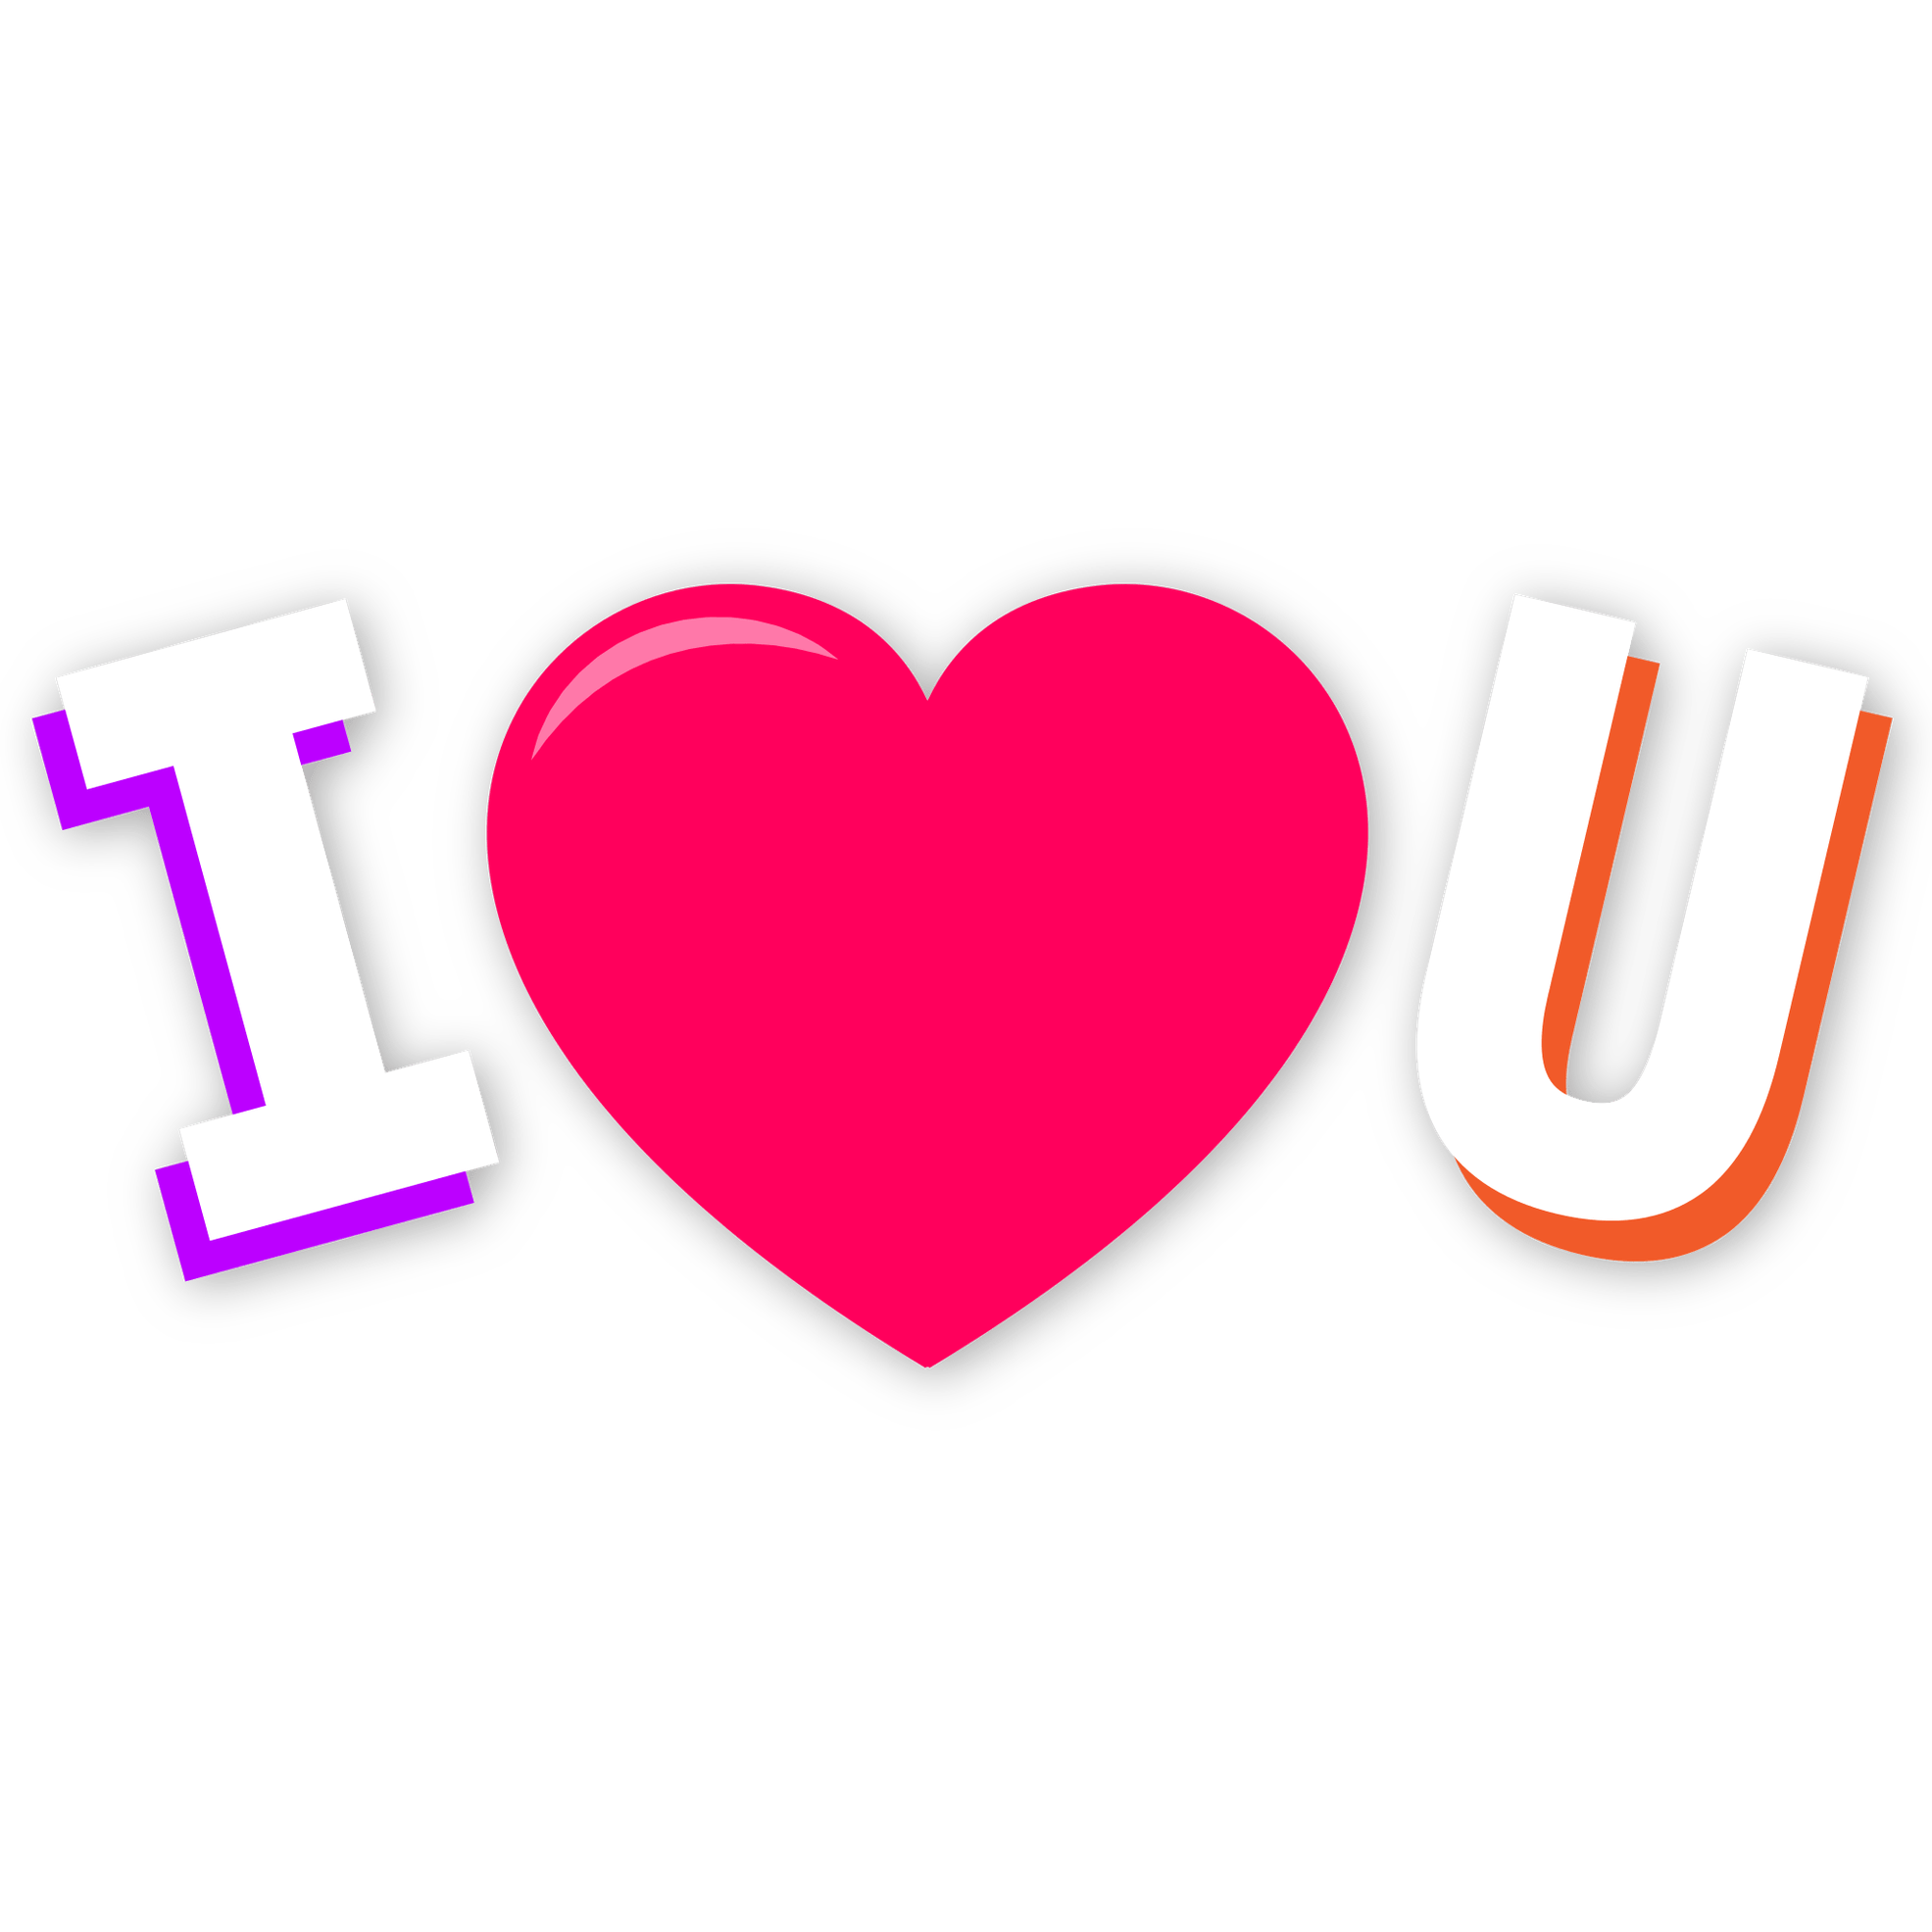 All clipart file download vector transparent download Download Love Text Png Clipart Pic zip file For category Love Text image vector transparent download